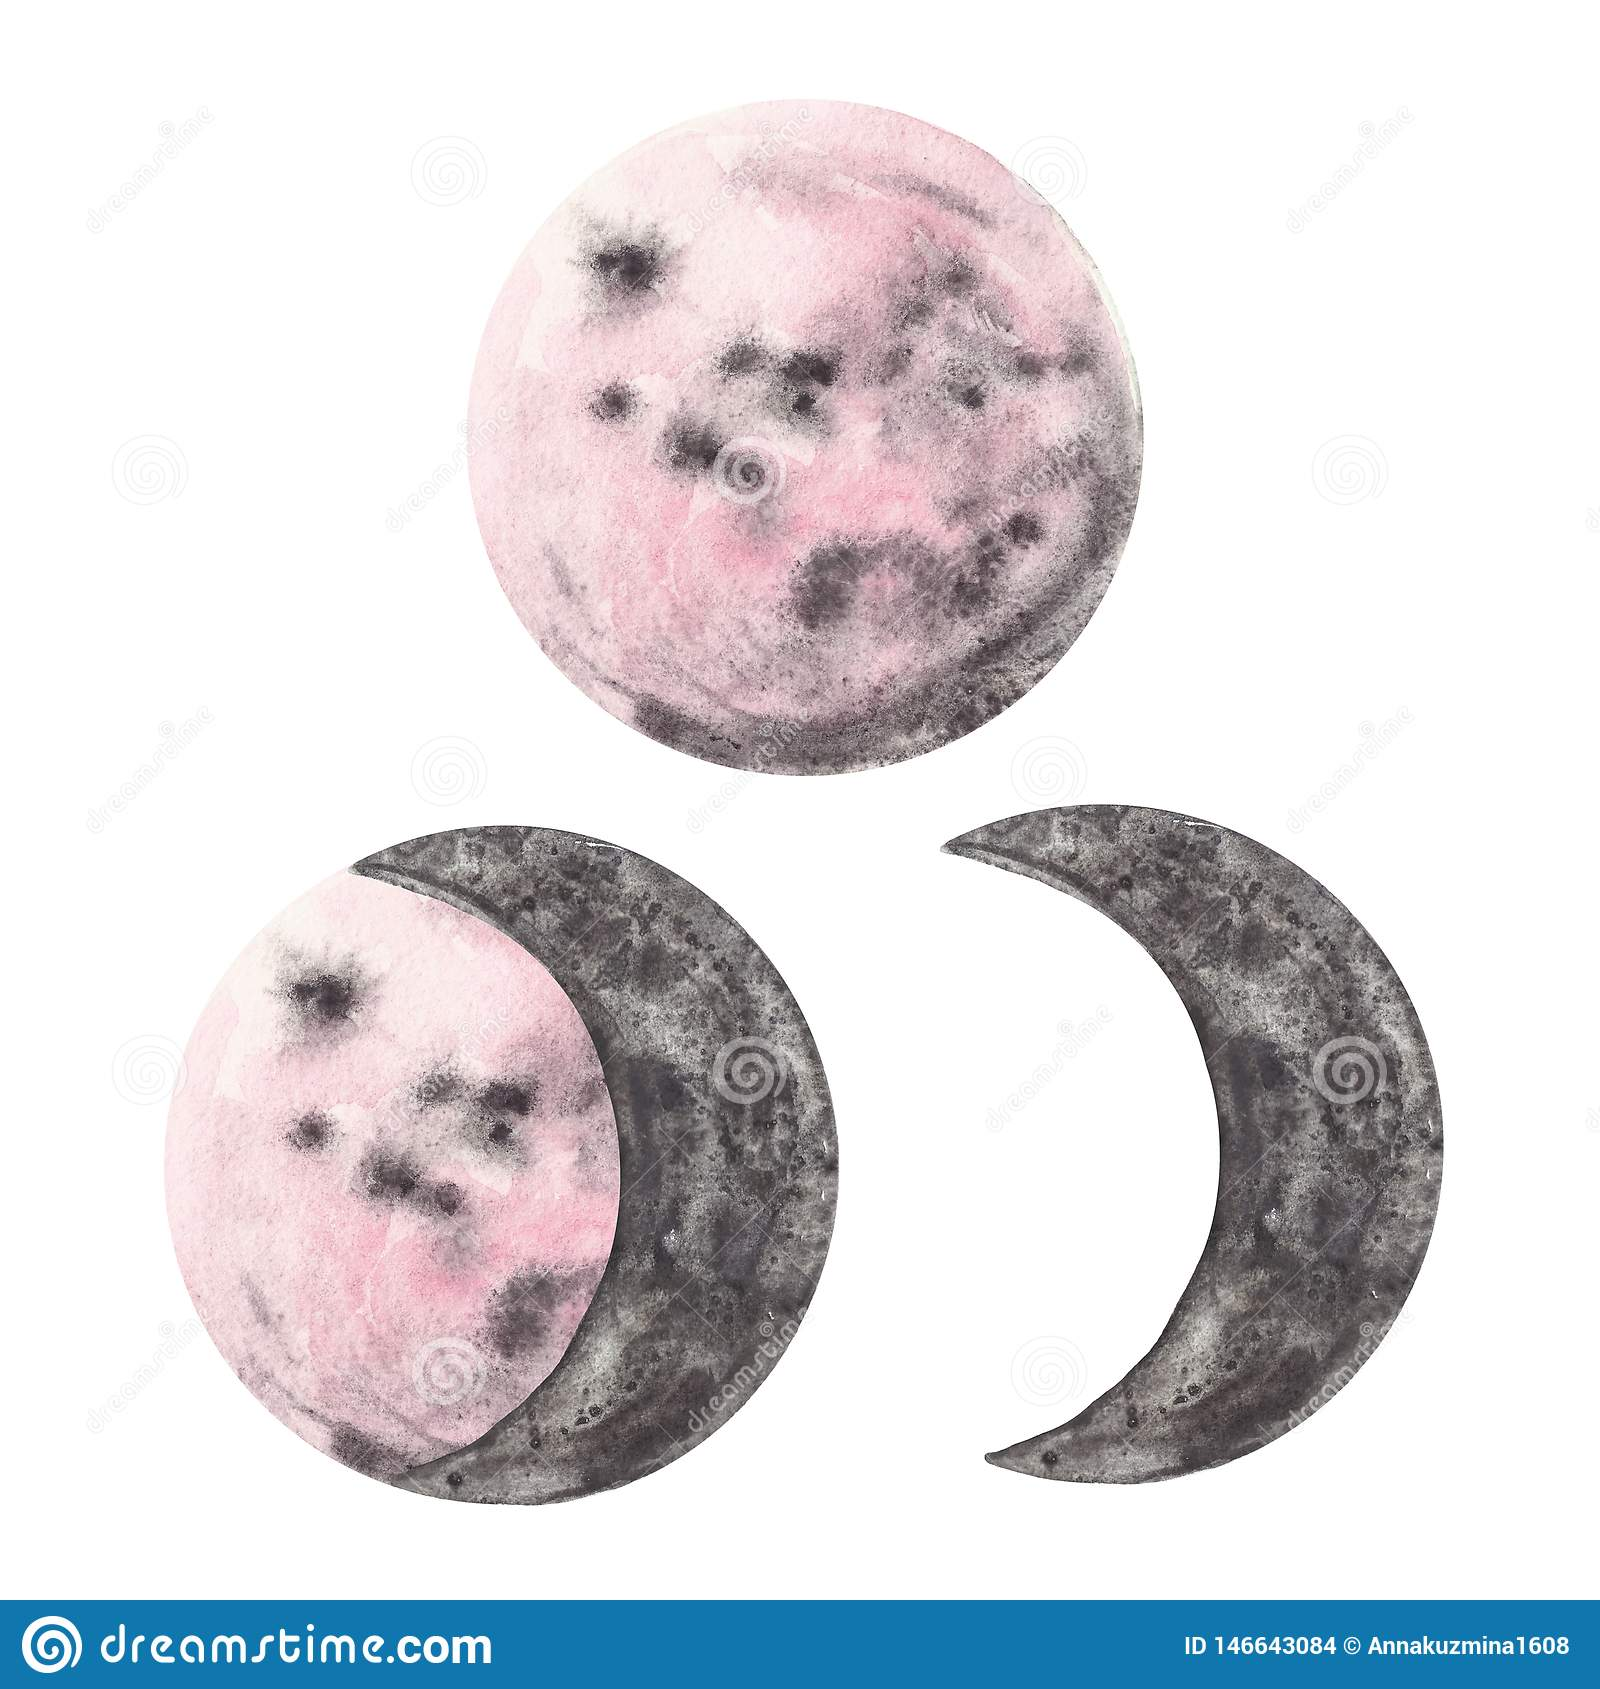 Watercolor hand painted moon phases set. Half and full pink and grey planets, isolated on white background. Magic illustration